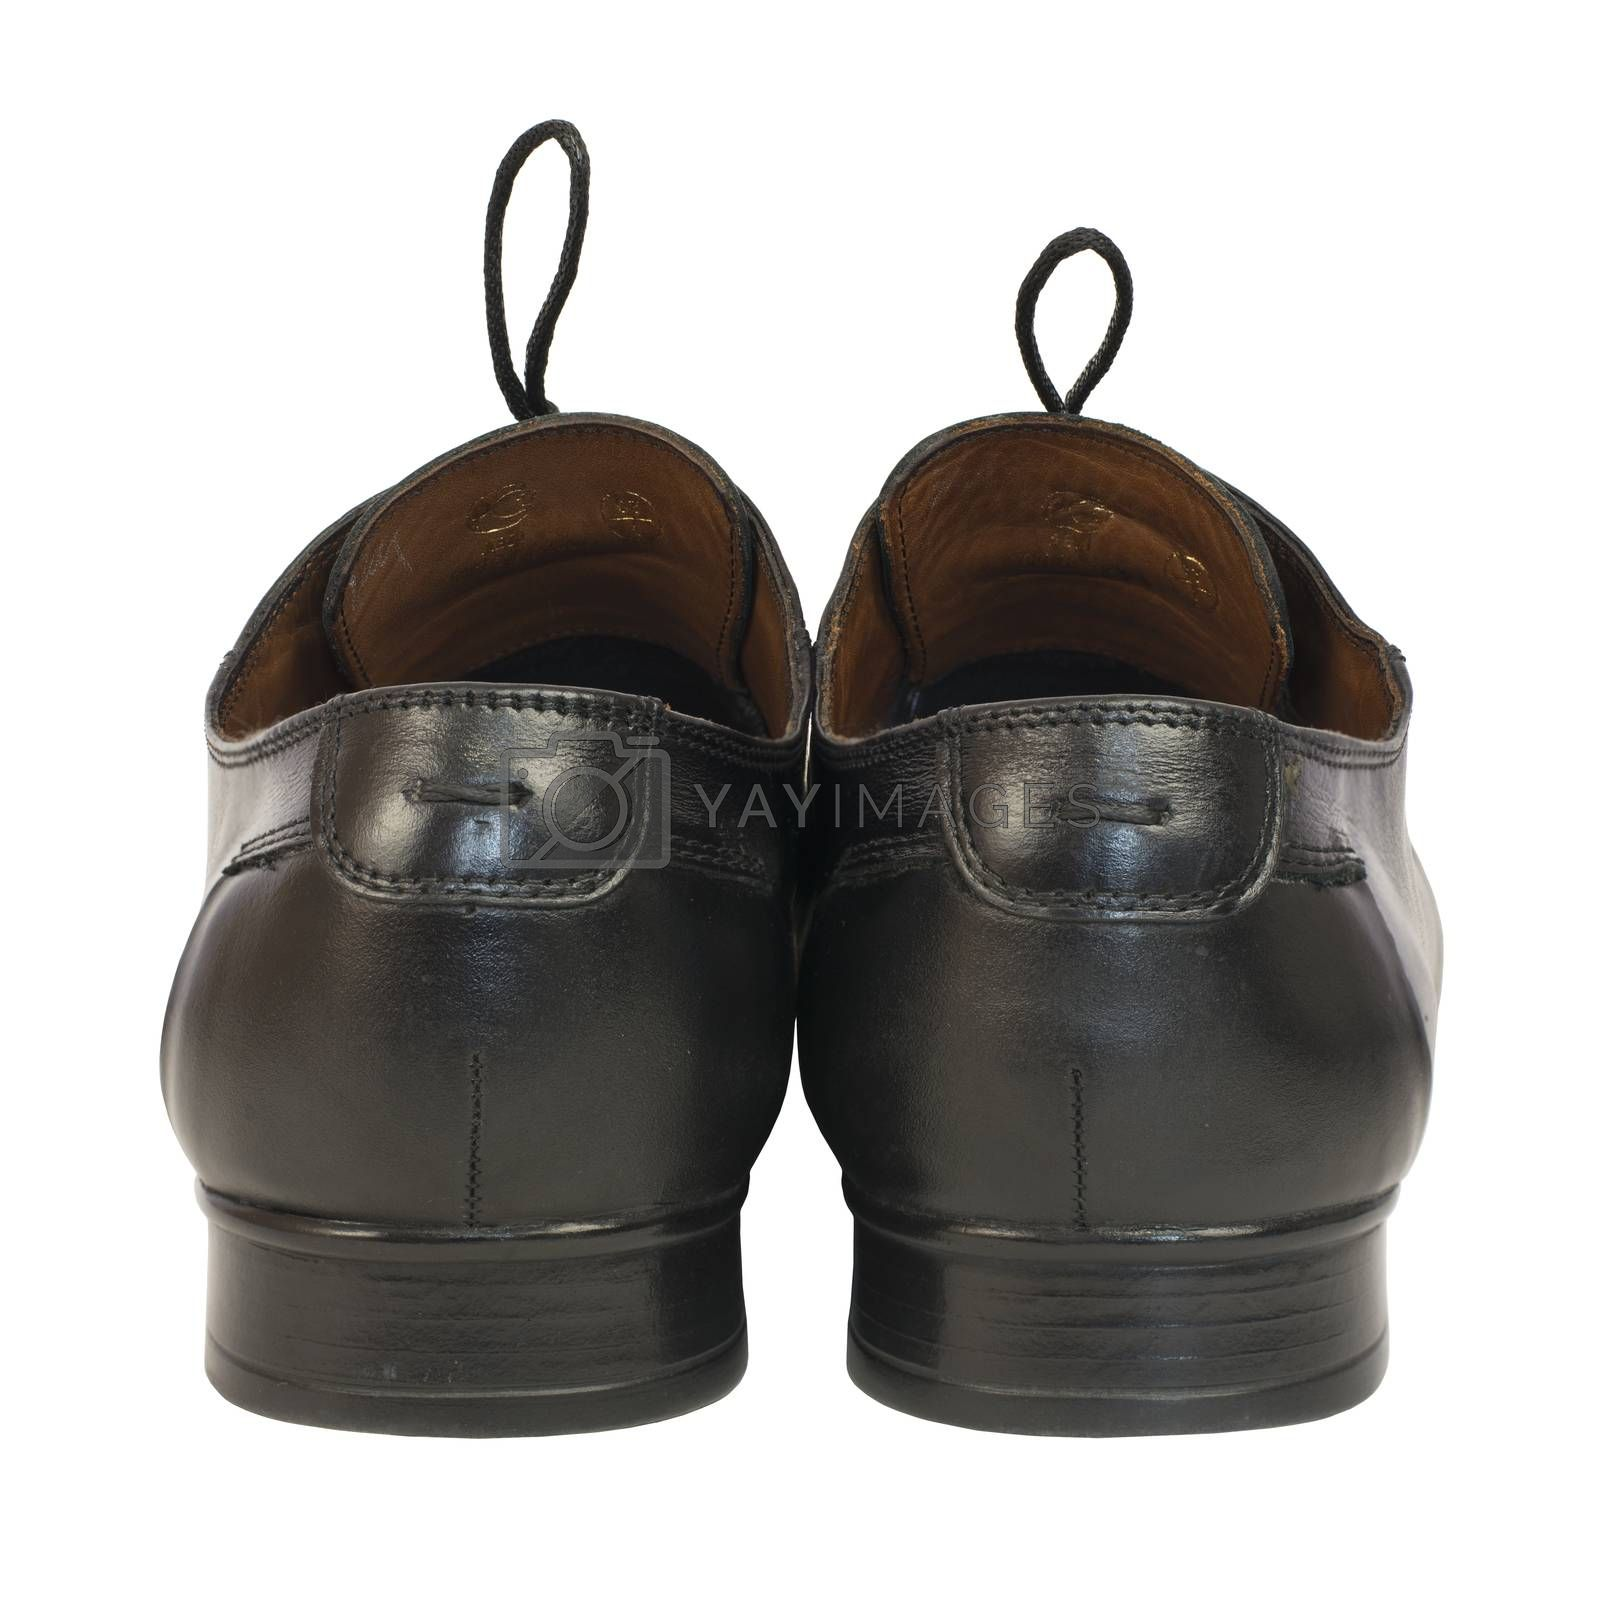 Pair of men's shoes in classic style by cherezoff